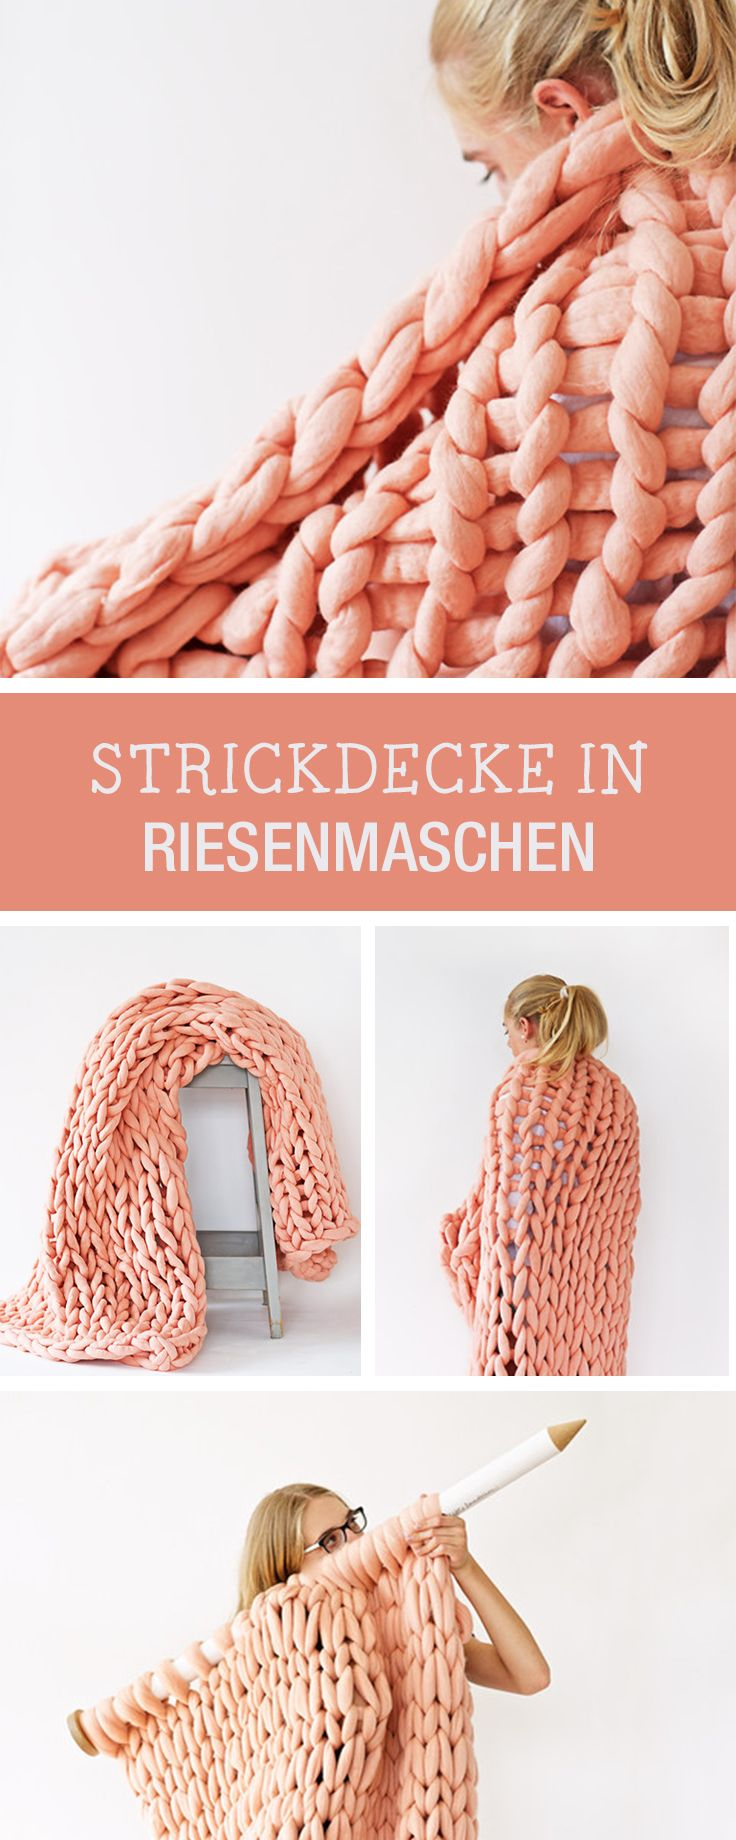 DIY-Anleitung: Decke aus Riesenmaschen stricken, Winteraccessoire das Dich warm hält / DIY tutorial: knitting blanket with huge mashes, winter accessory that'll keep you warm via DaWanda.com